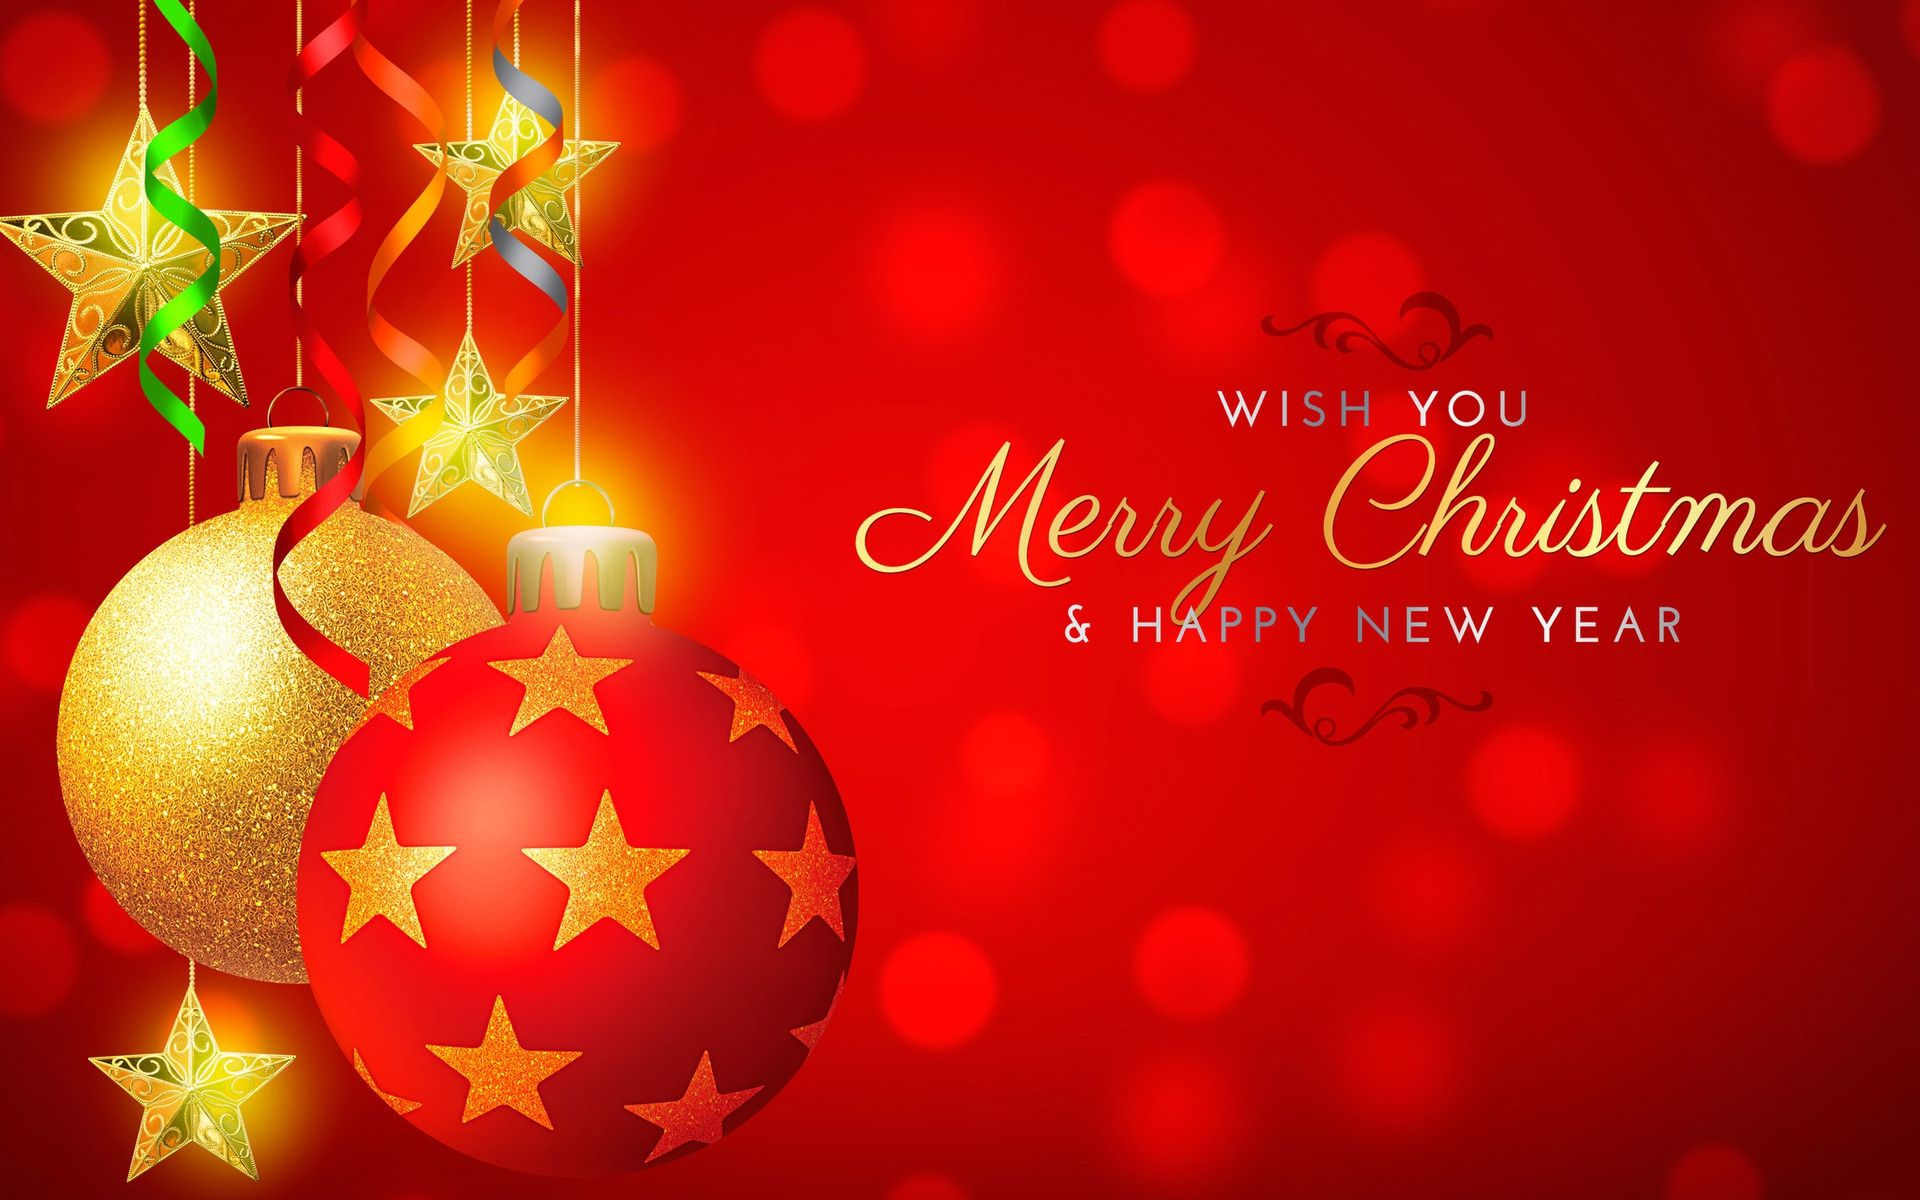 Merry Christmas Wallpaper Widescreen Red 2016 Happy Merry Christmas Wish You Merry Christmas Merry Christmas Quotes